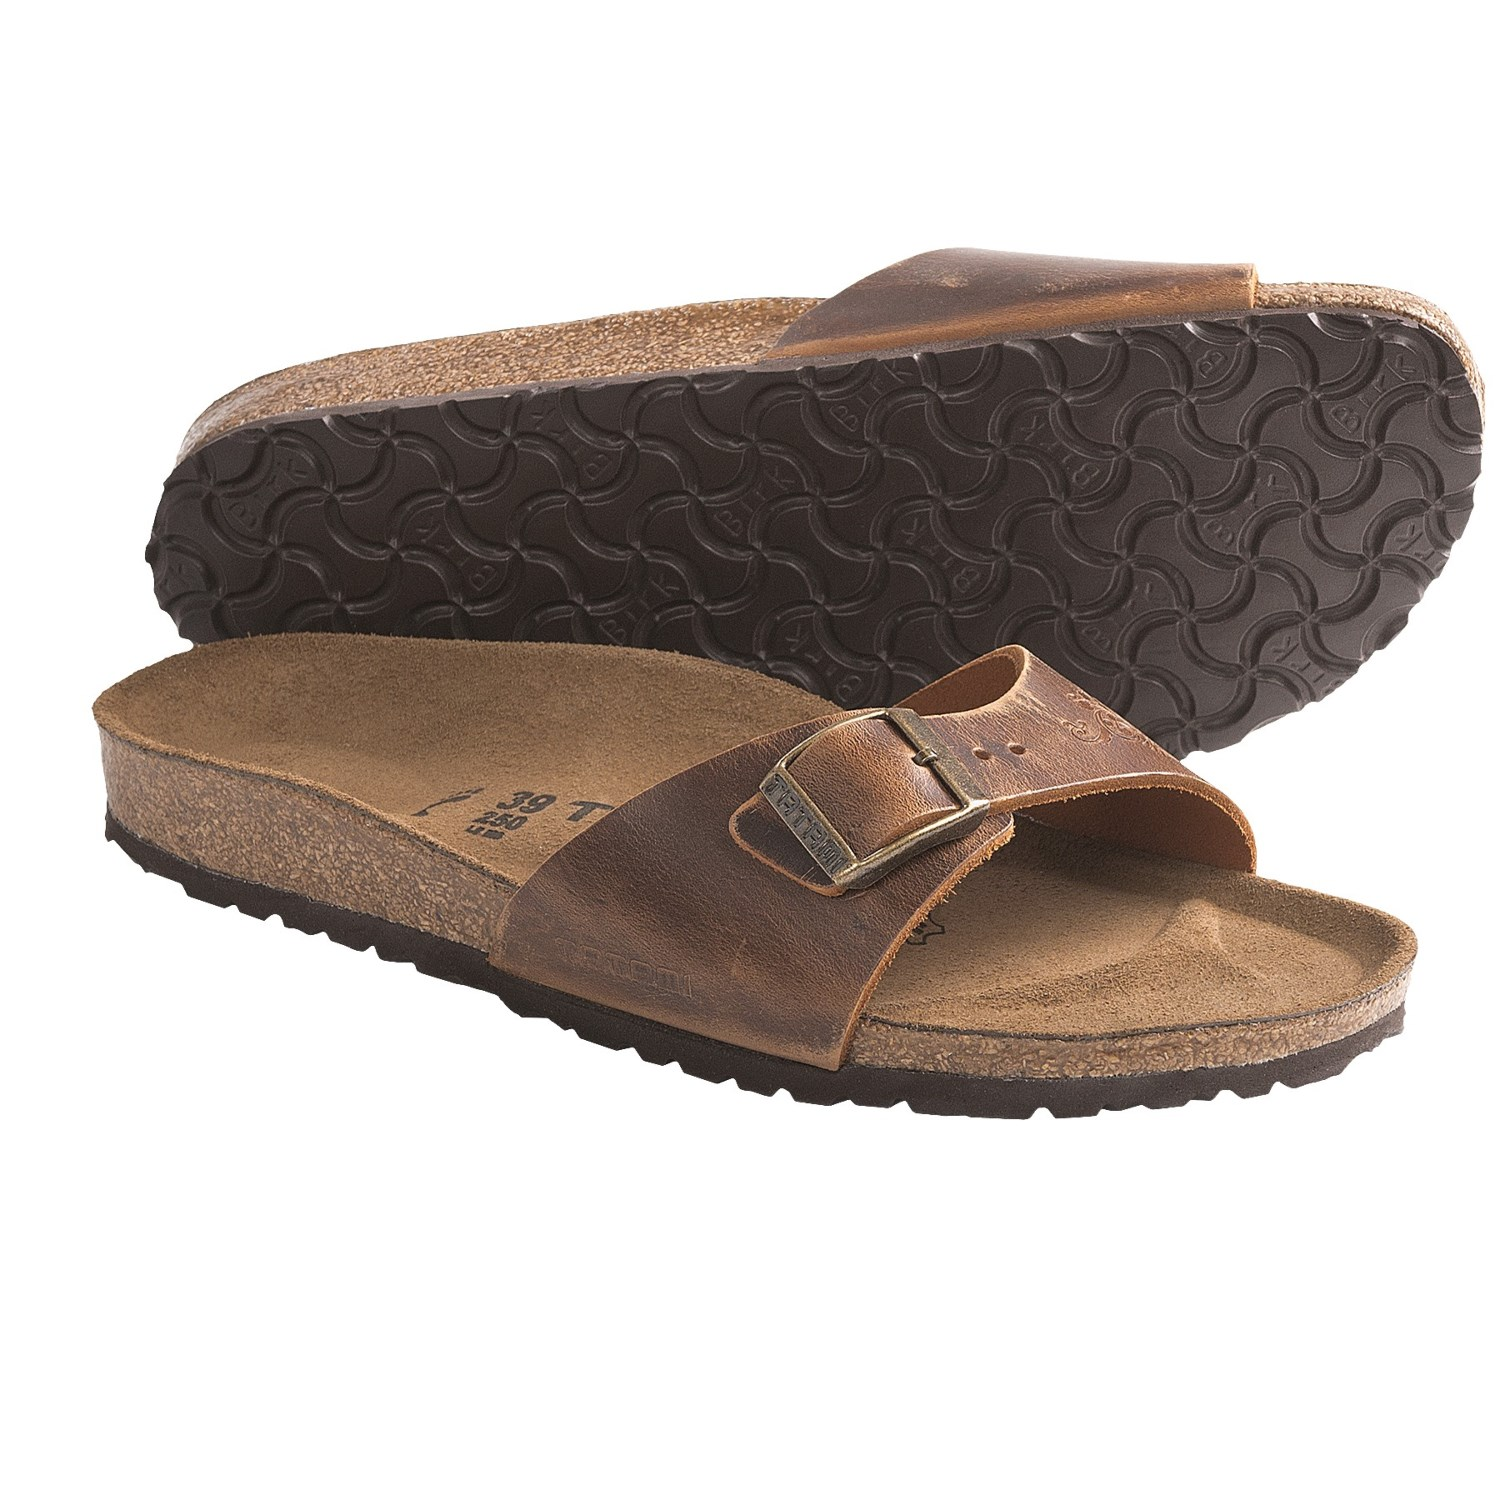 94c41425cc3962 Cheap birkenstock sydney sandal see low prices birkenstock sydney sandal  for sales. Search for shoes birkenstocks price comparison. Birko-flor flat.